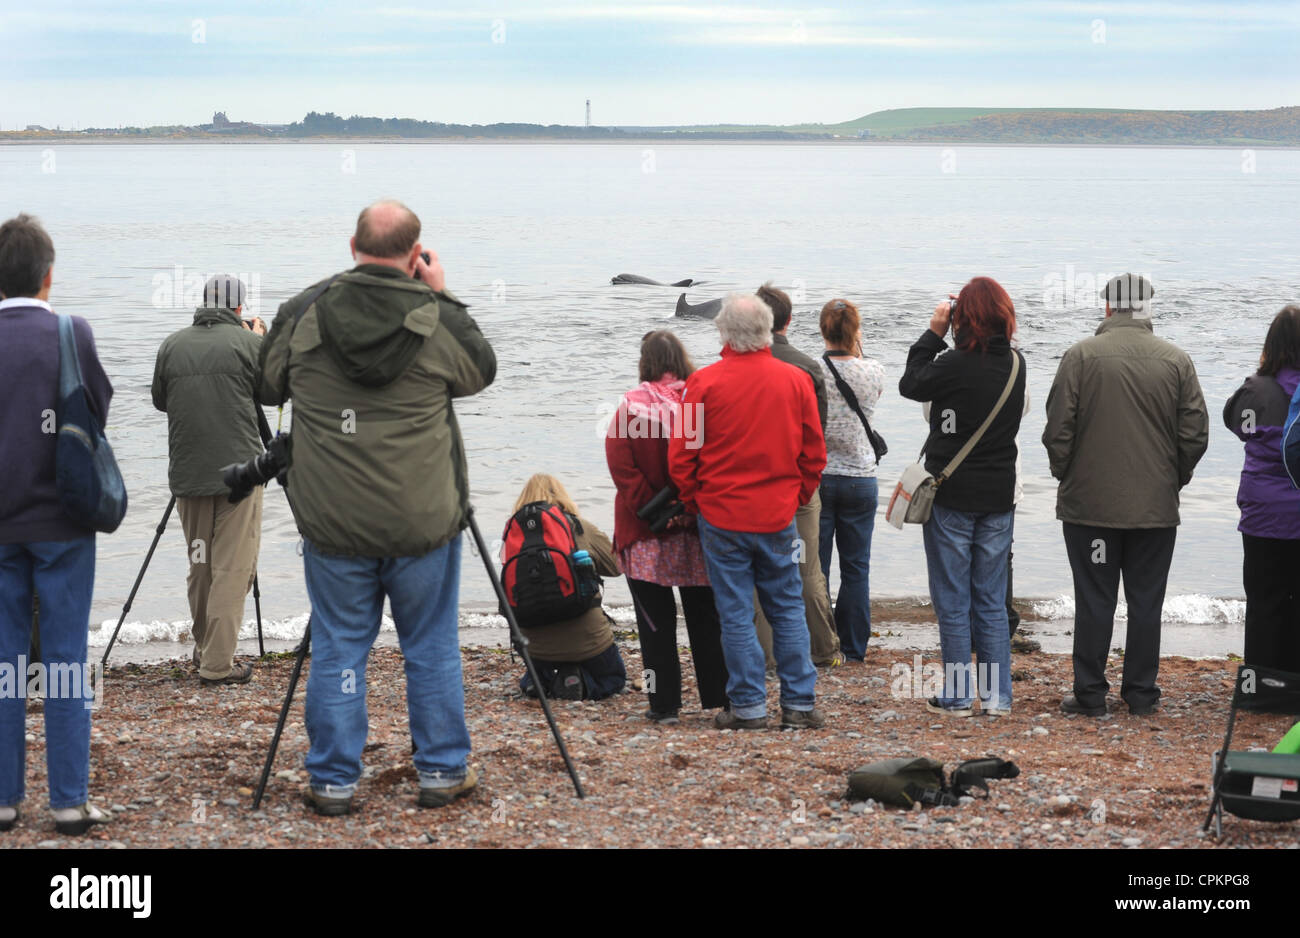 WILDLIFE WATCHERS GATHER TO SEE WILD DOLPHINS SWIMMING AT CHANONRY POINT NEAR ROSEMARKIE ON THE MORAY FIRTH IN SCOTLAND Stock Photo